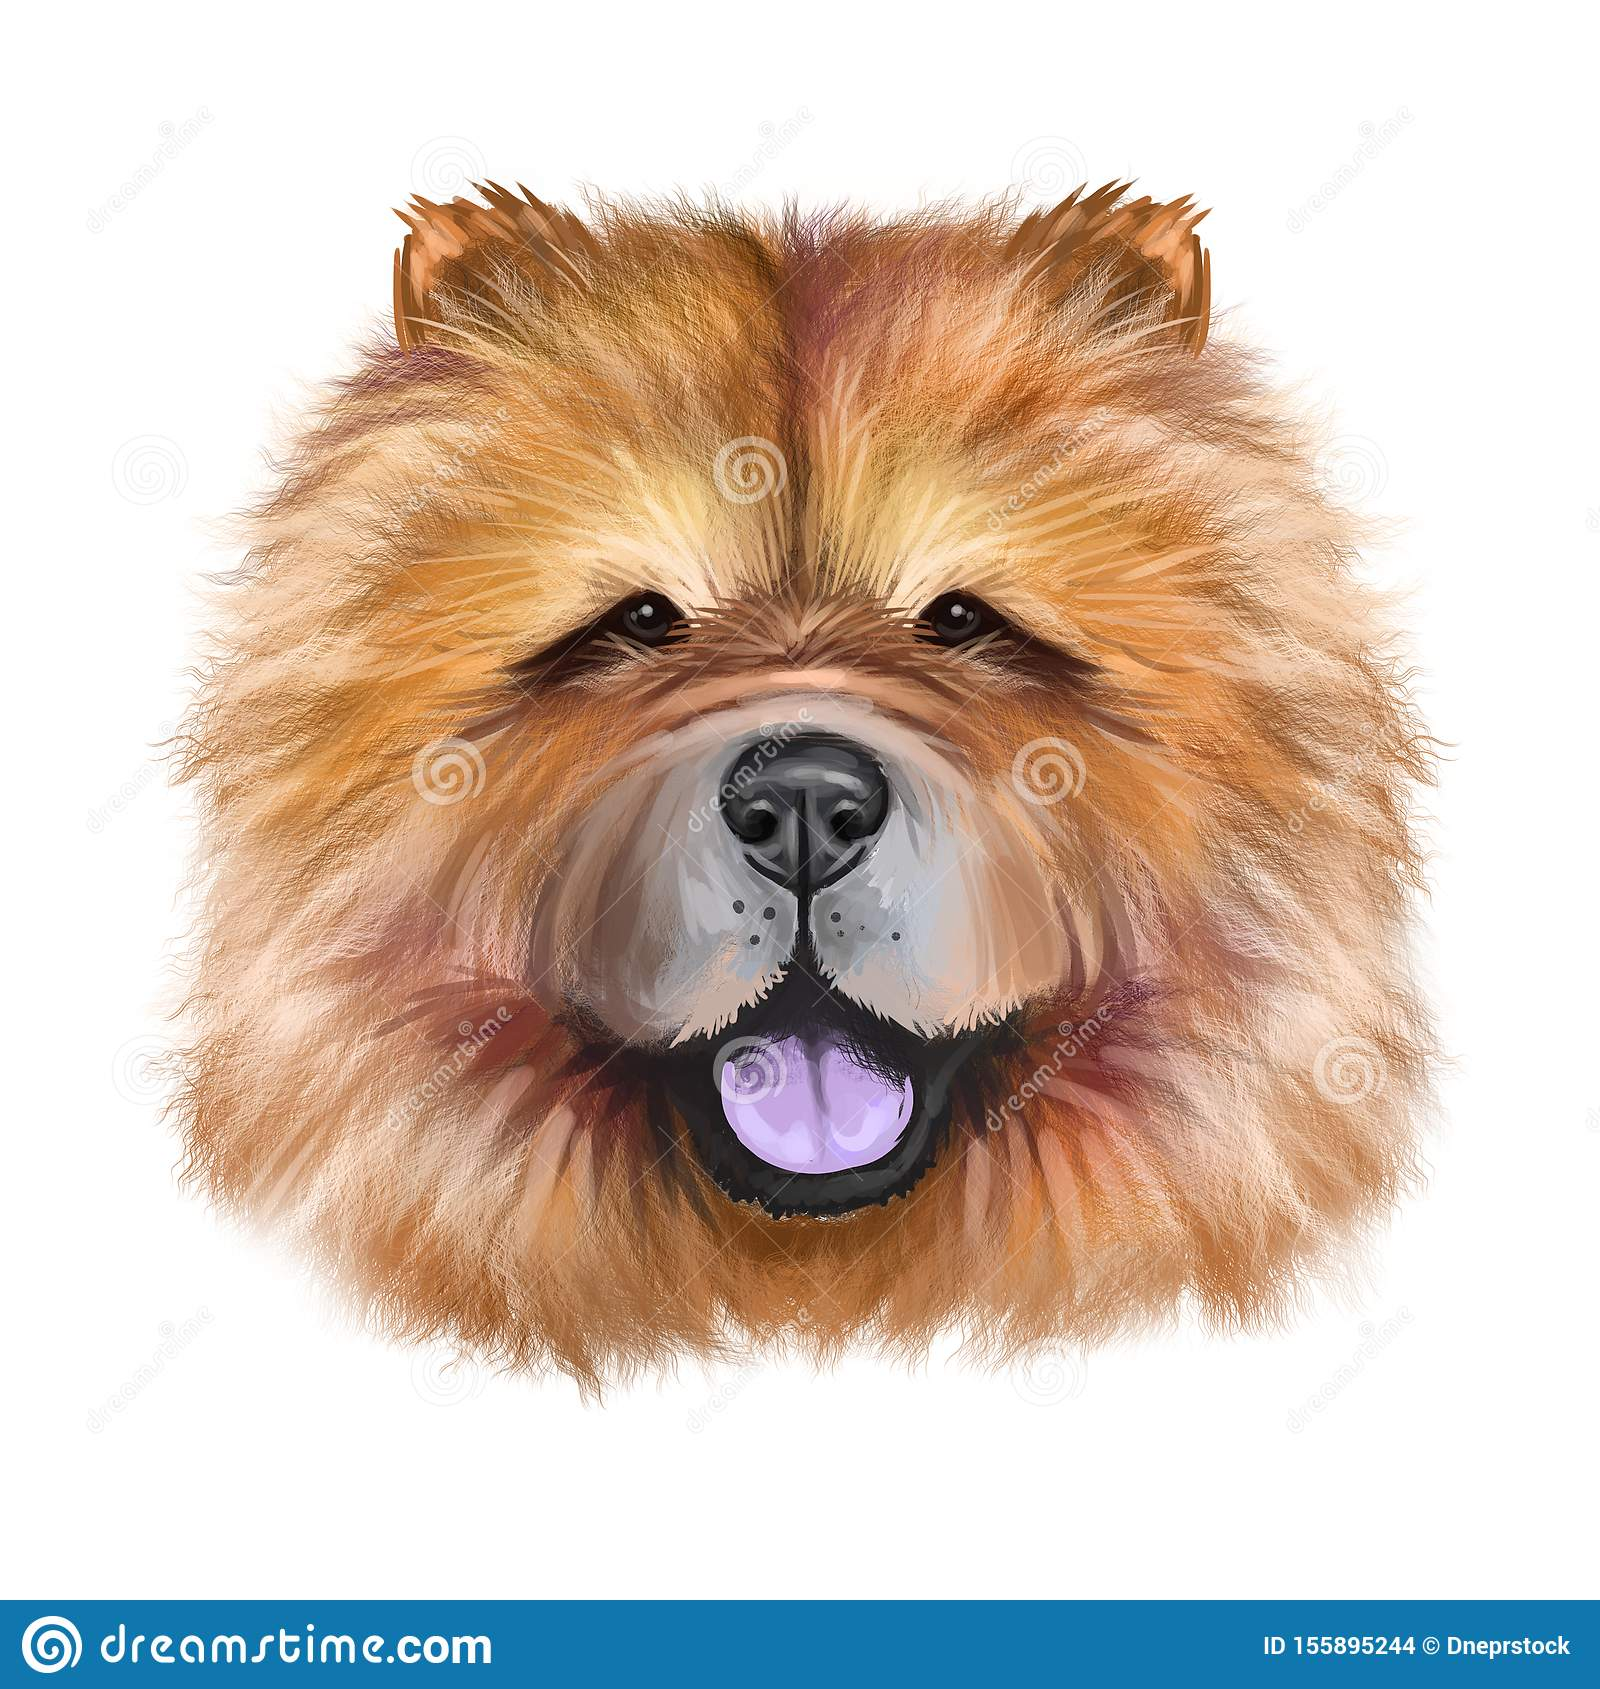 Chow Chow dog breed isolated on white background digital art illustration. Cute pet hand drawn portrait. Graphic clipart design